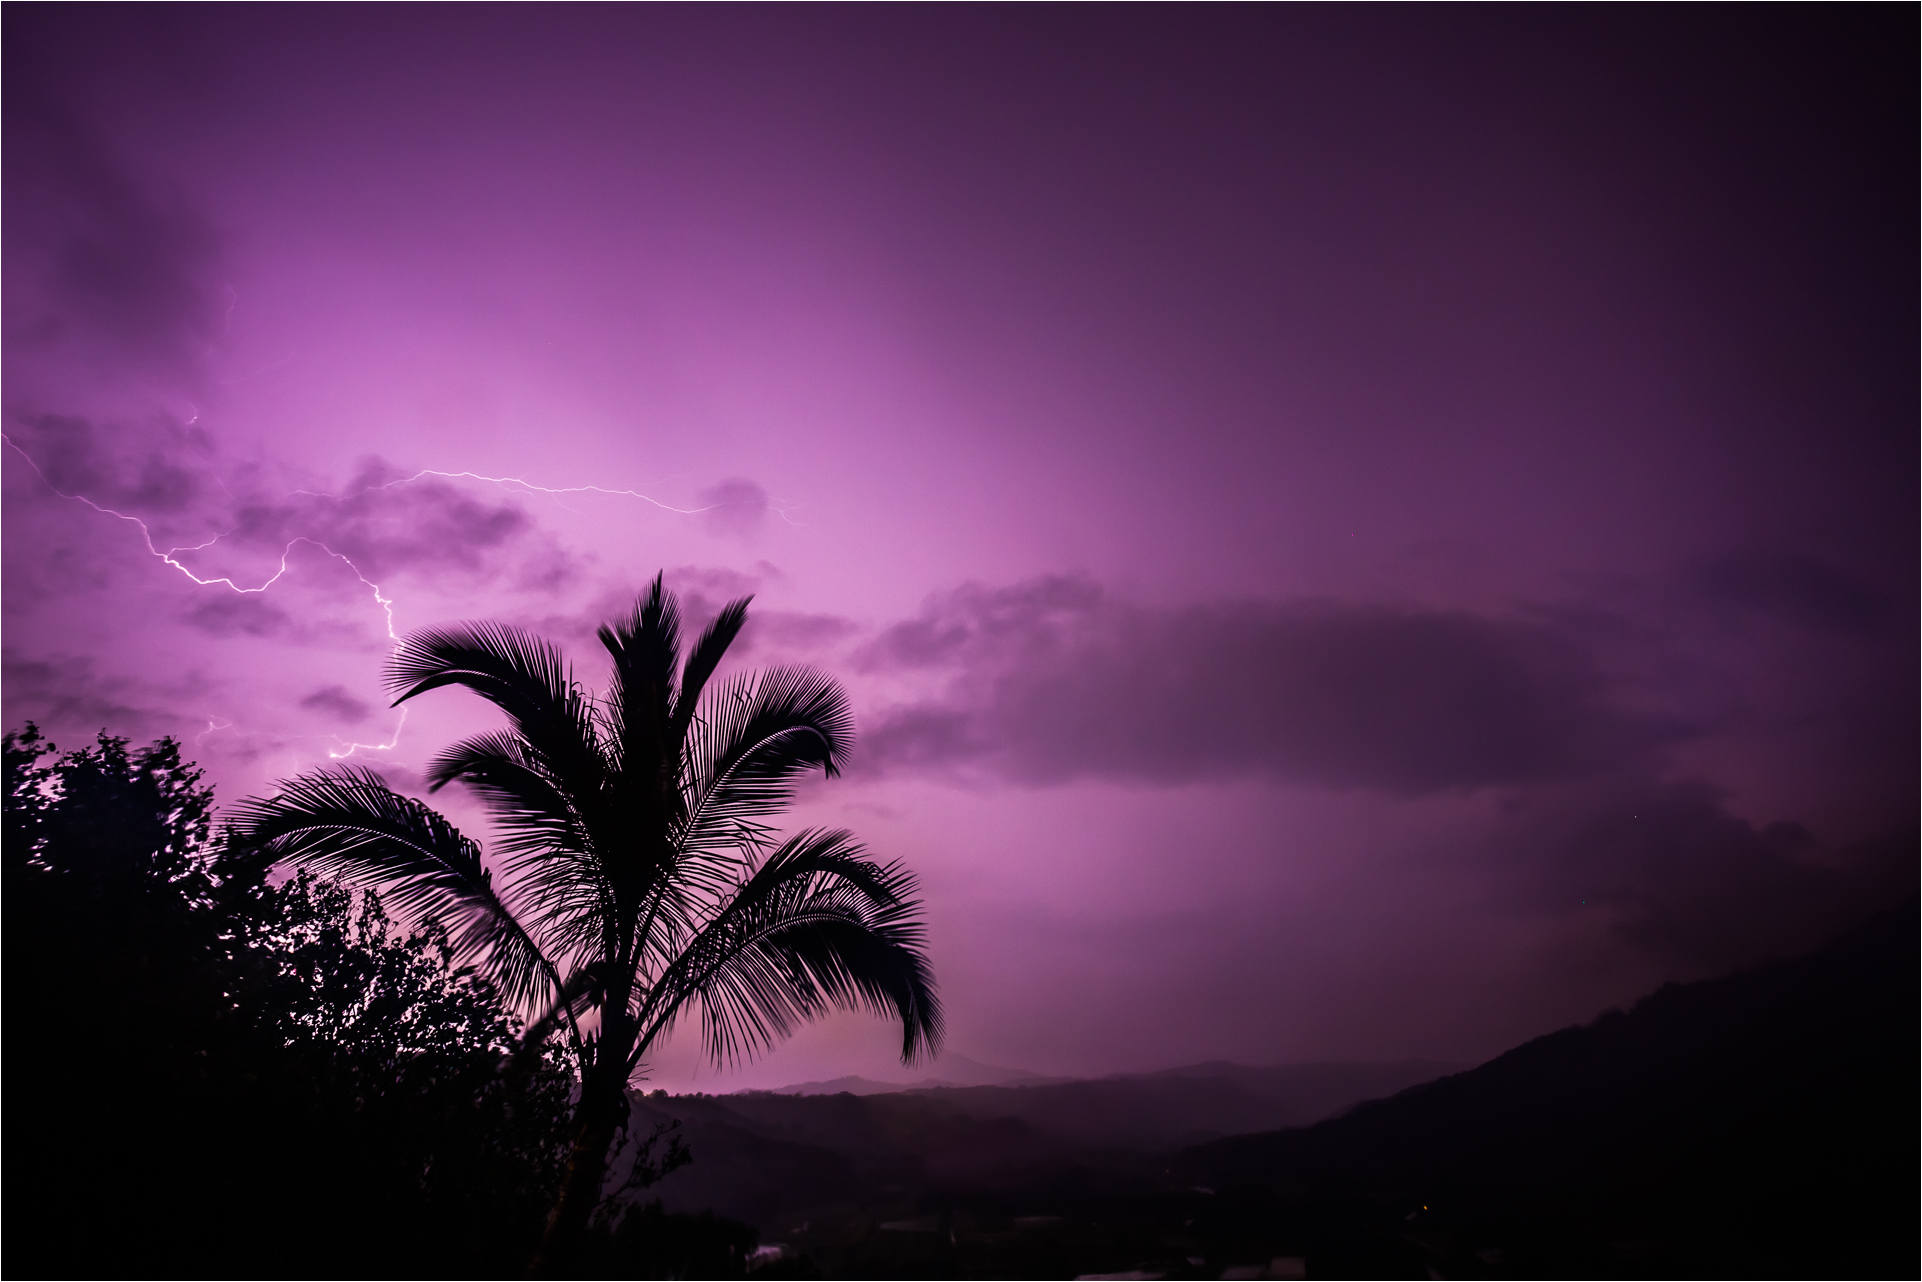 A silent observer to Pele's storm - © Christopher Martin-0038